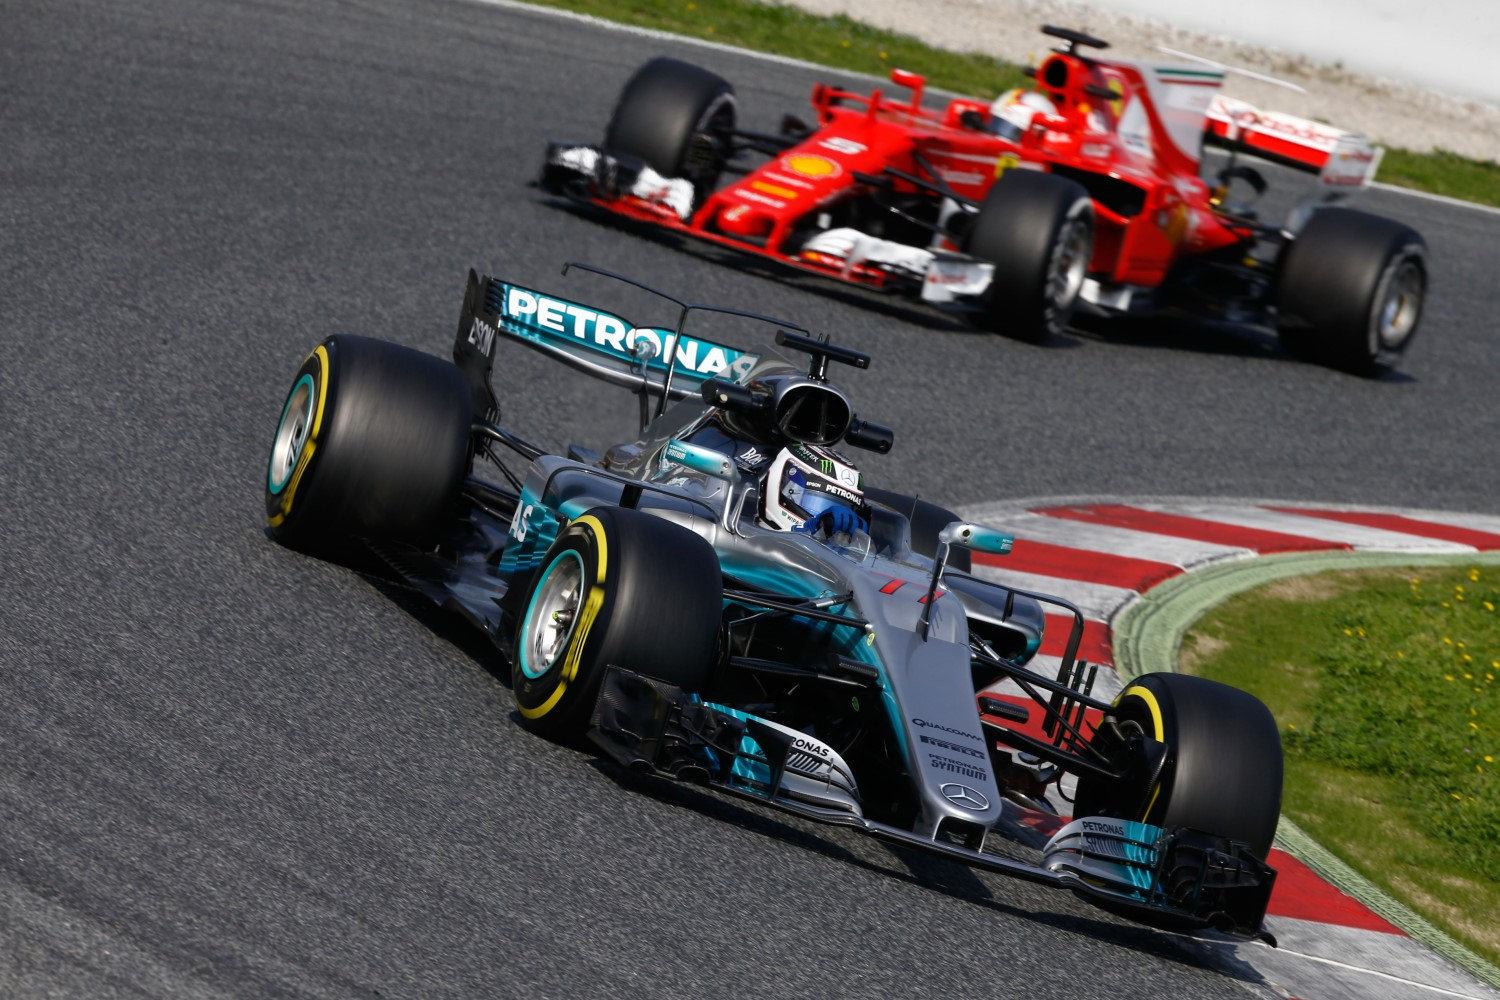 Bottas ahead of Vettel in Barcelona. Is the Mercedes still ahead of the Ferrari?